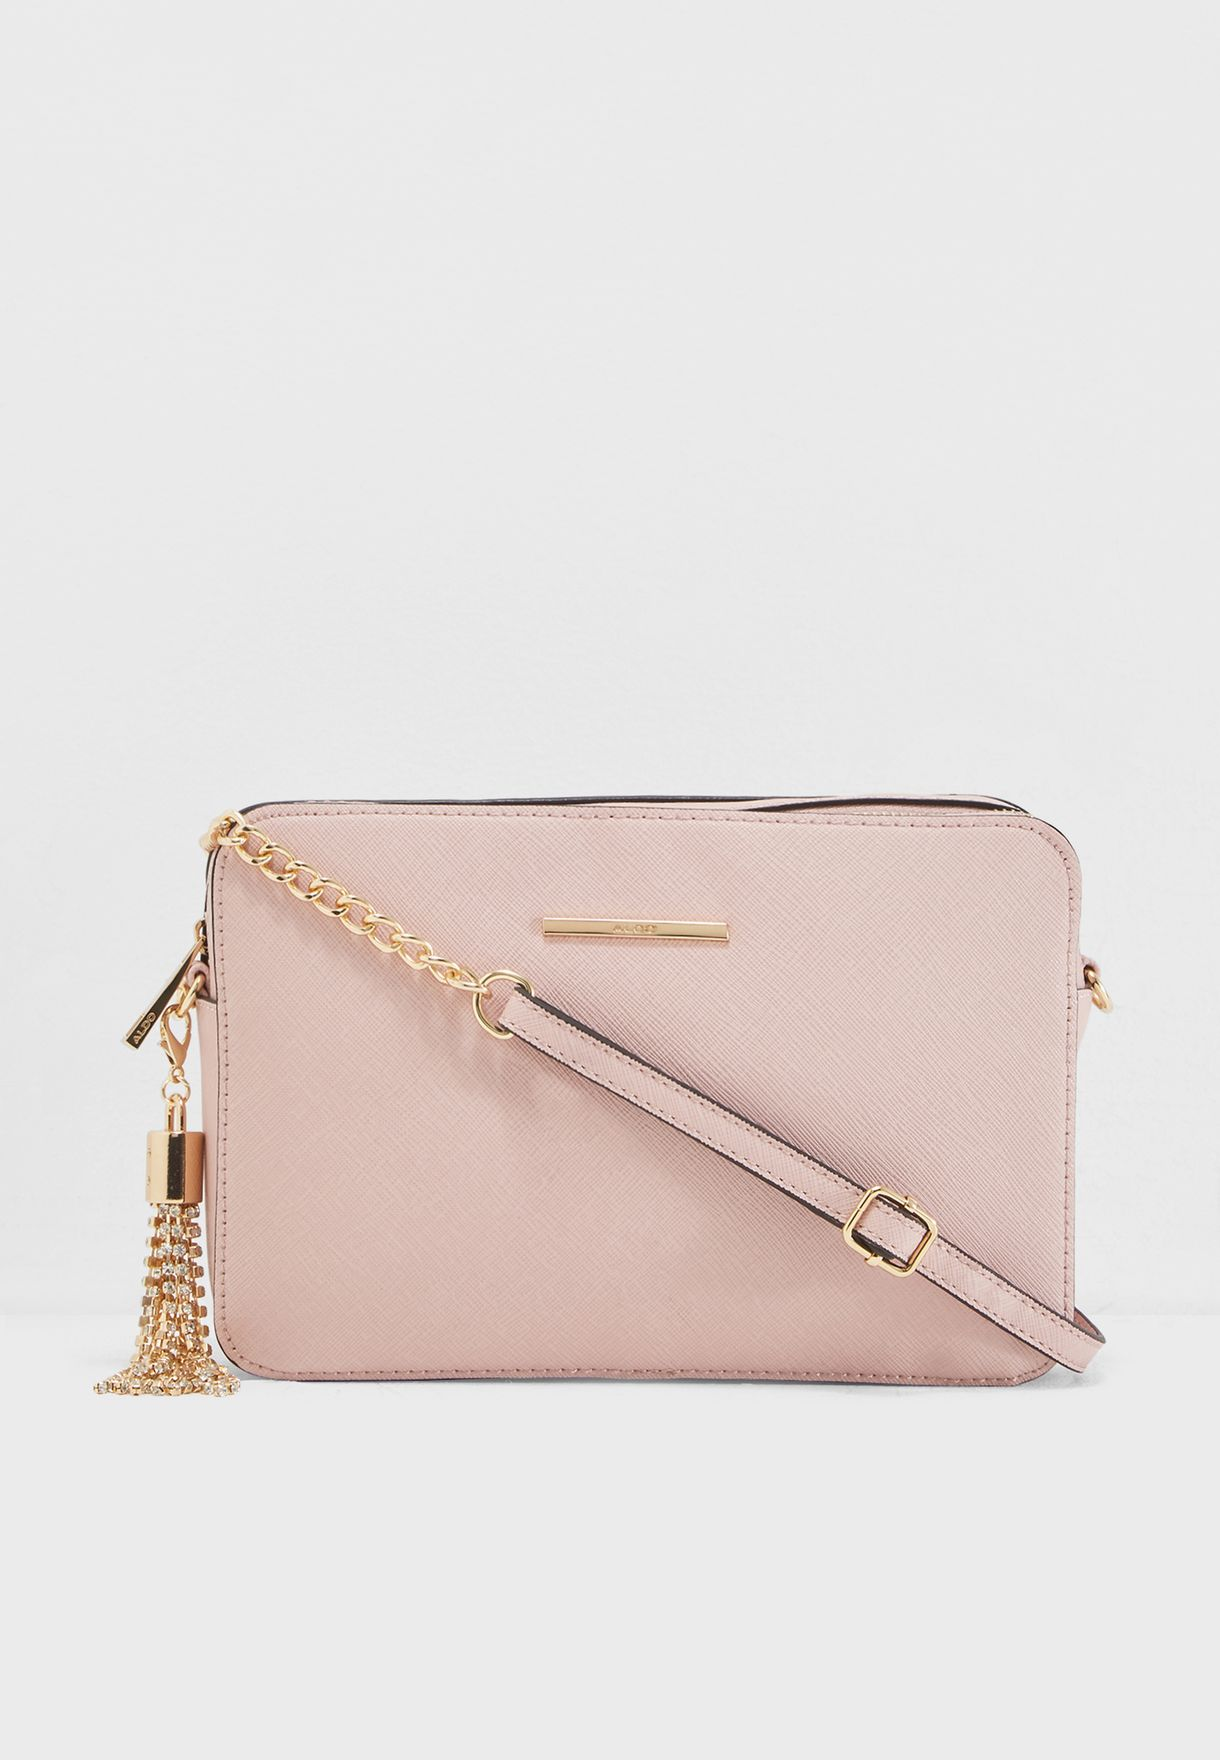 Shop Aldo pink Reform Crossbody ELROOI55 for Women in UAE - AL729AC74FWB f2ff4de28aacf